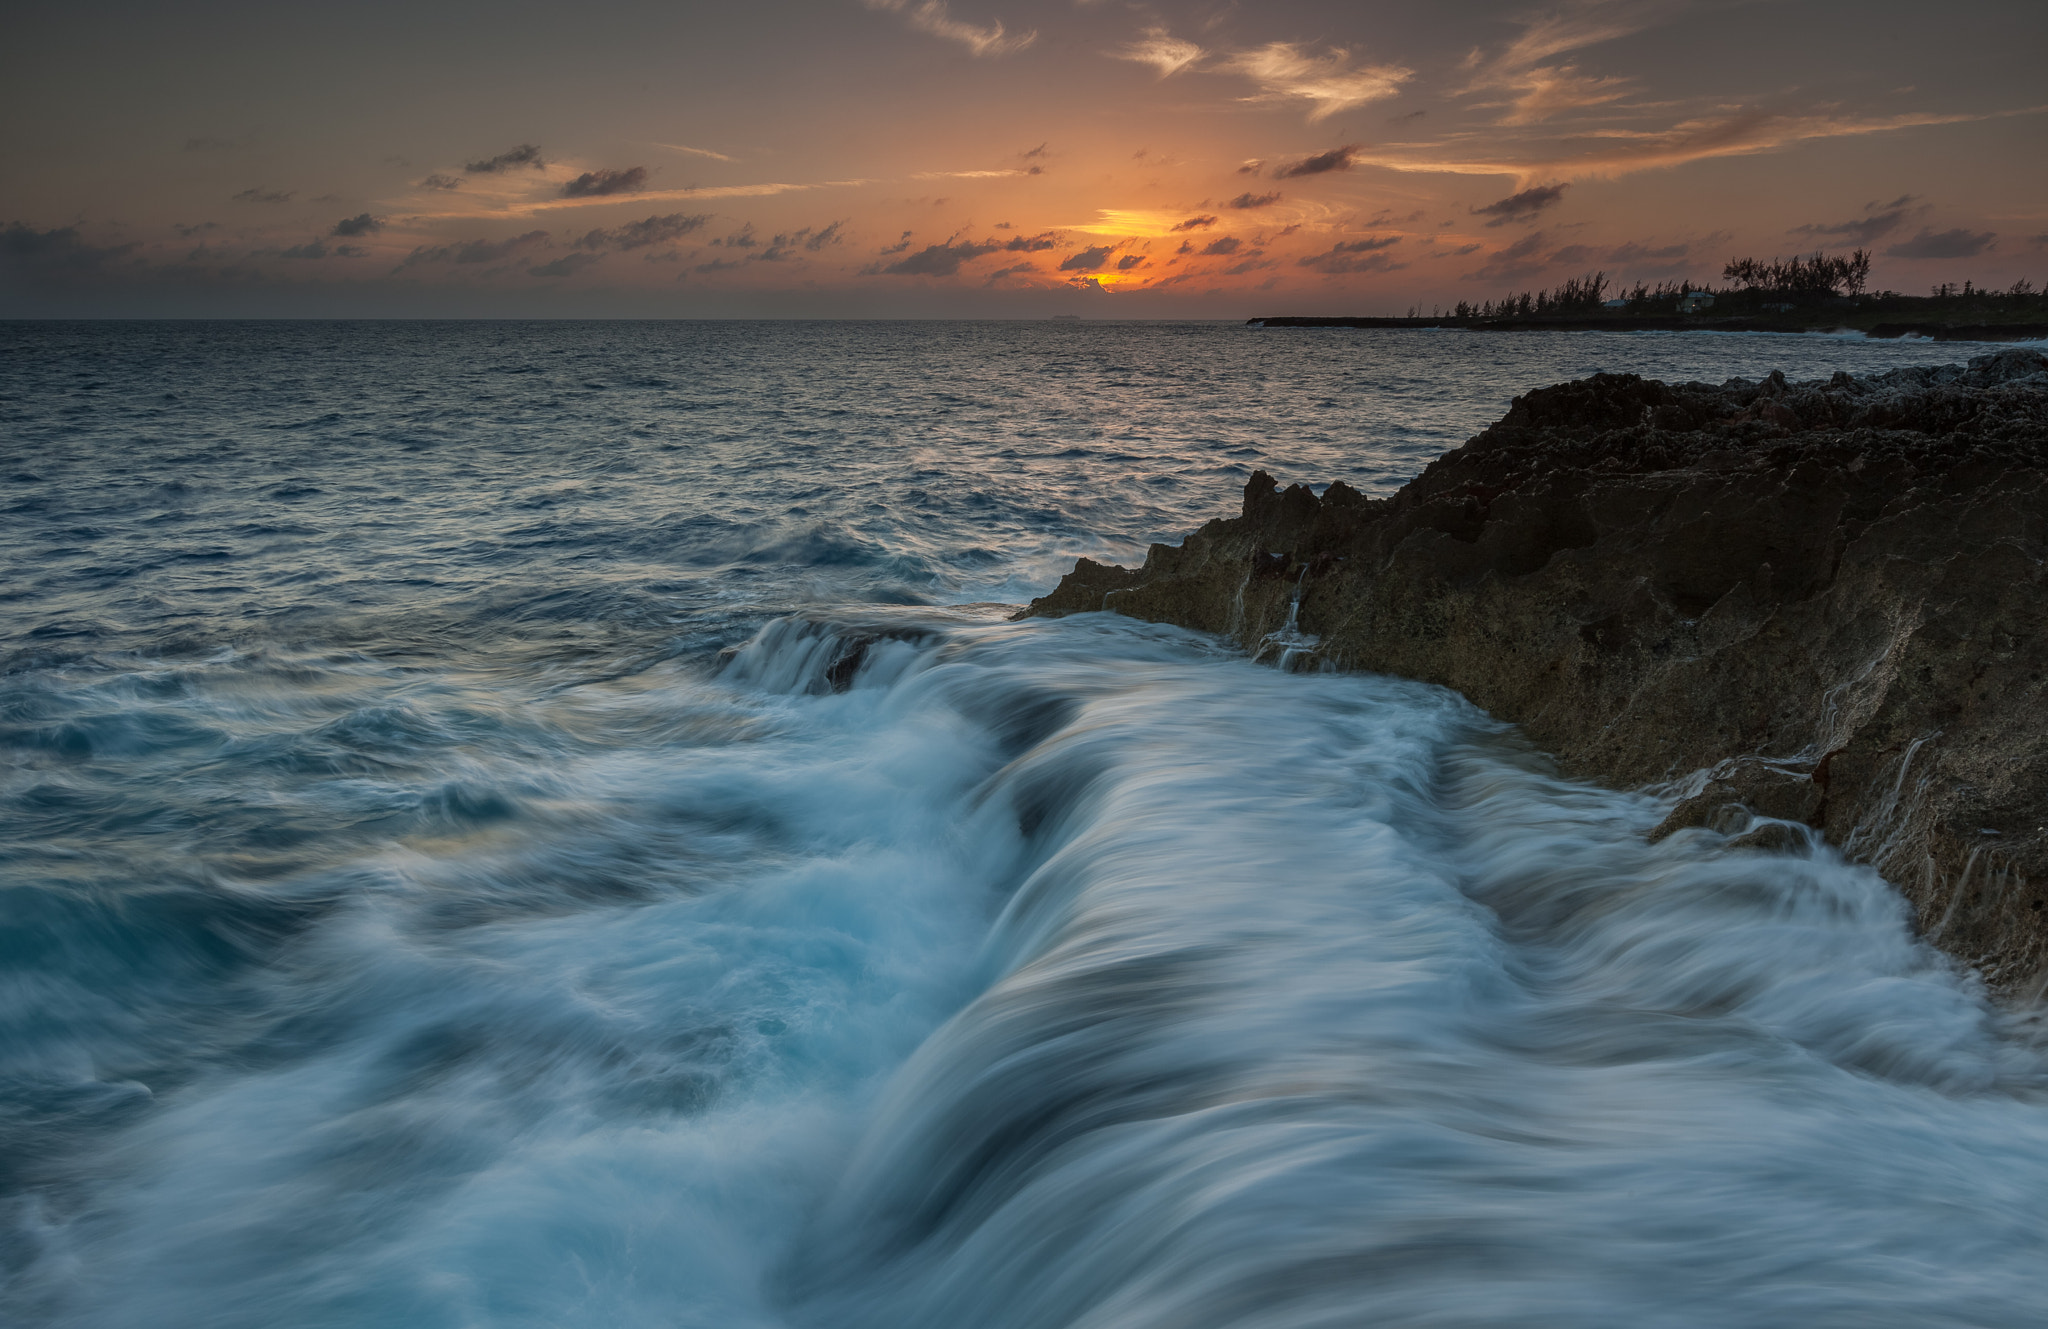 Photograph Let's smooth flow by Guntomi Wibowo on 500px